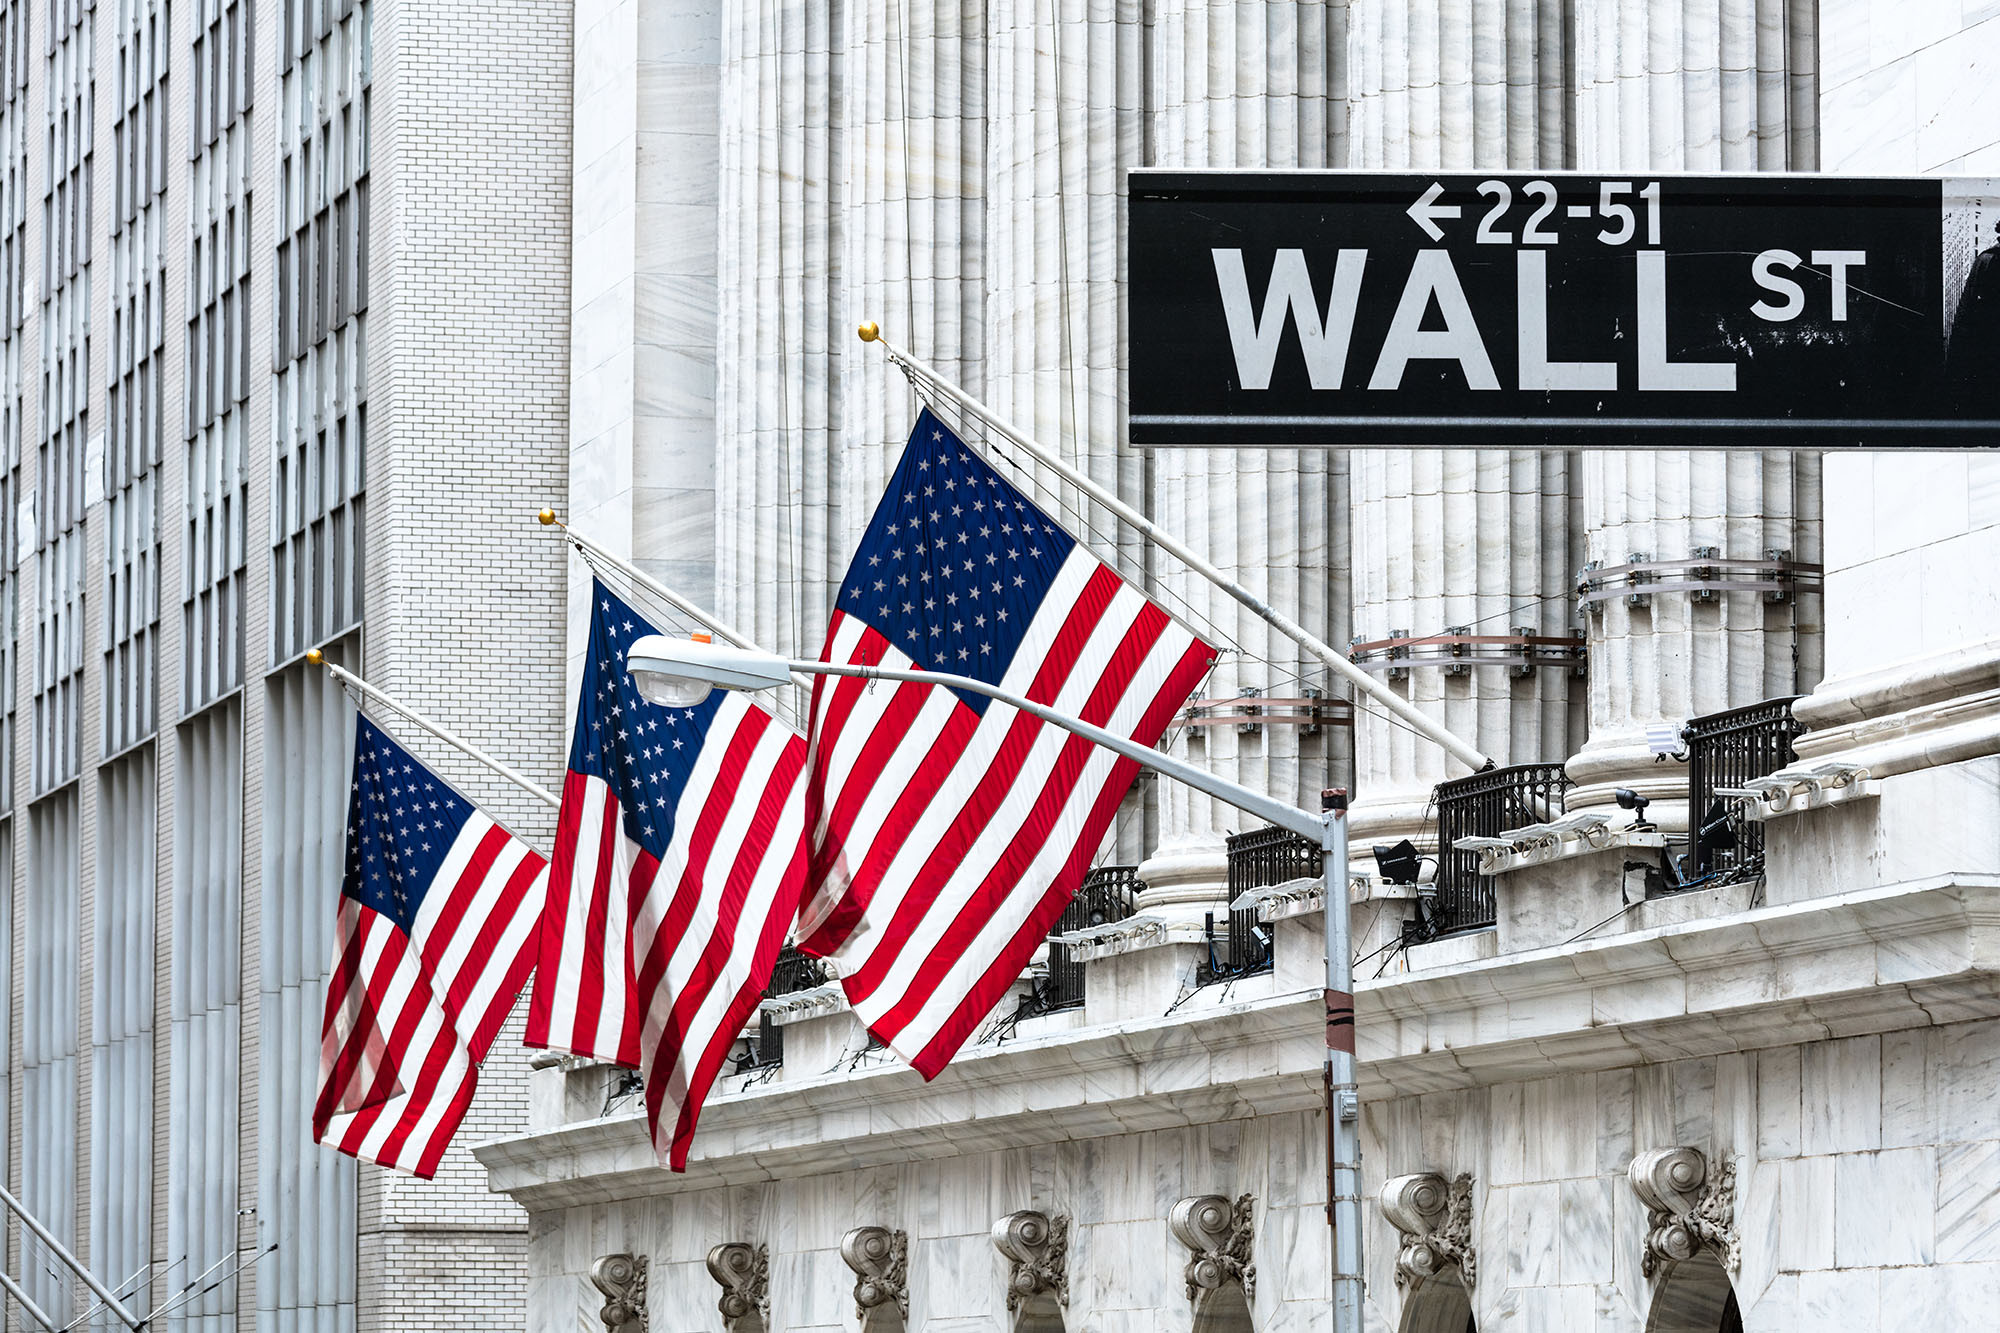 Reflections on Wall Street and Donald Trump